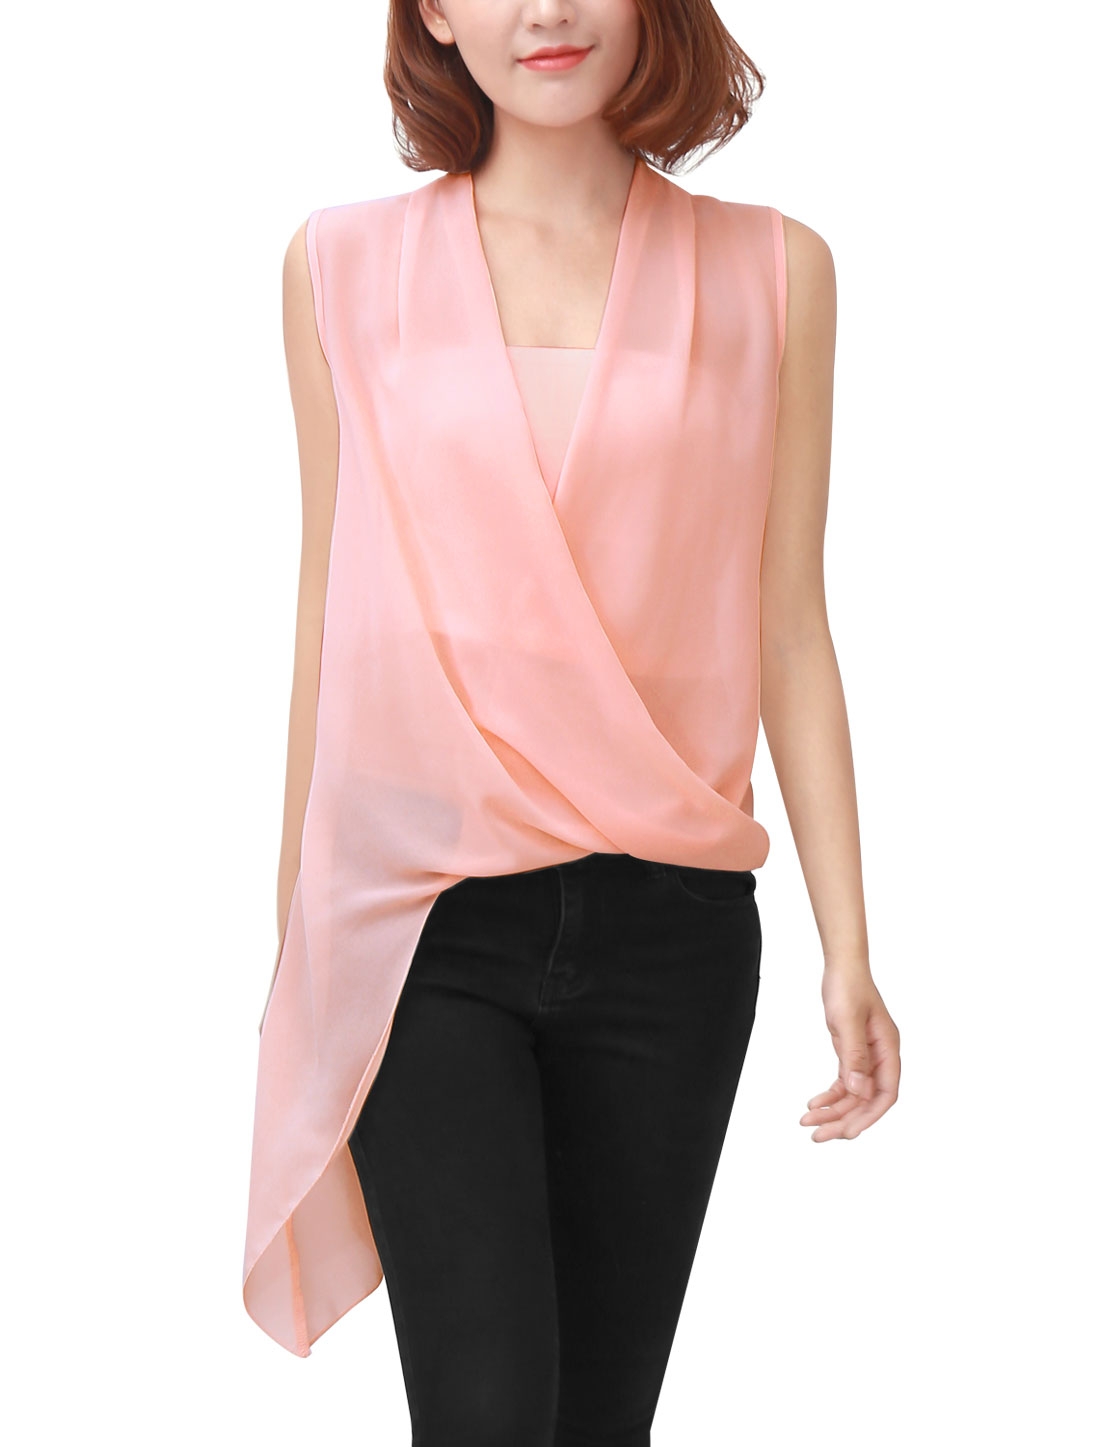 Women Drape Front V Neck Irregular Hem Chiffon Blouse w Tube Top Nude Pink XS